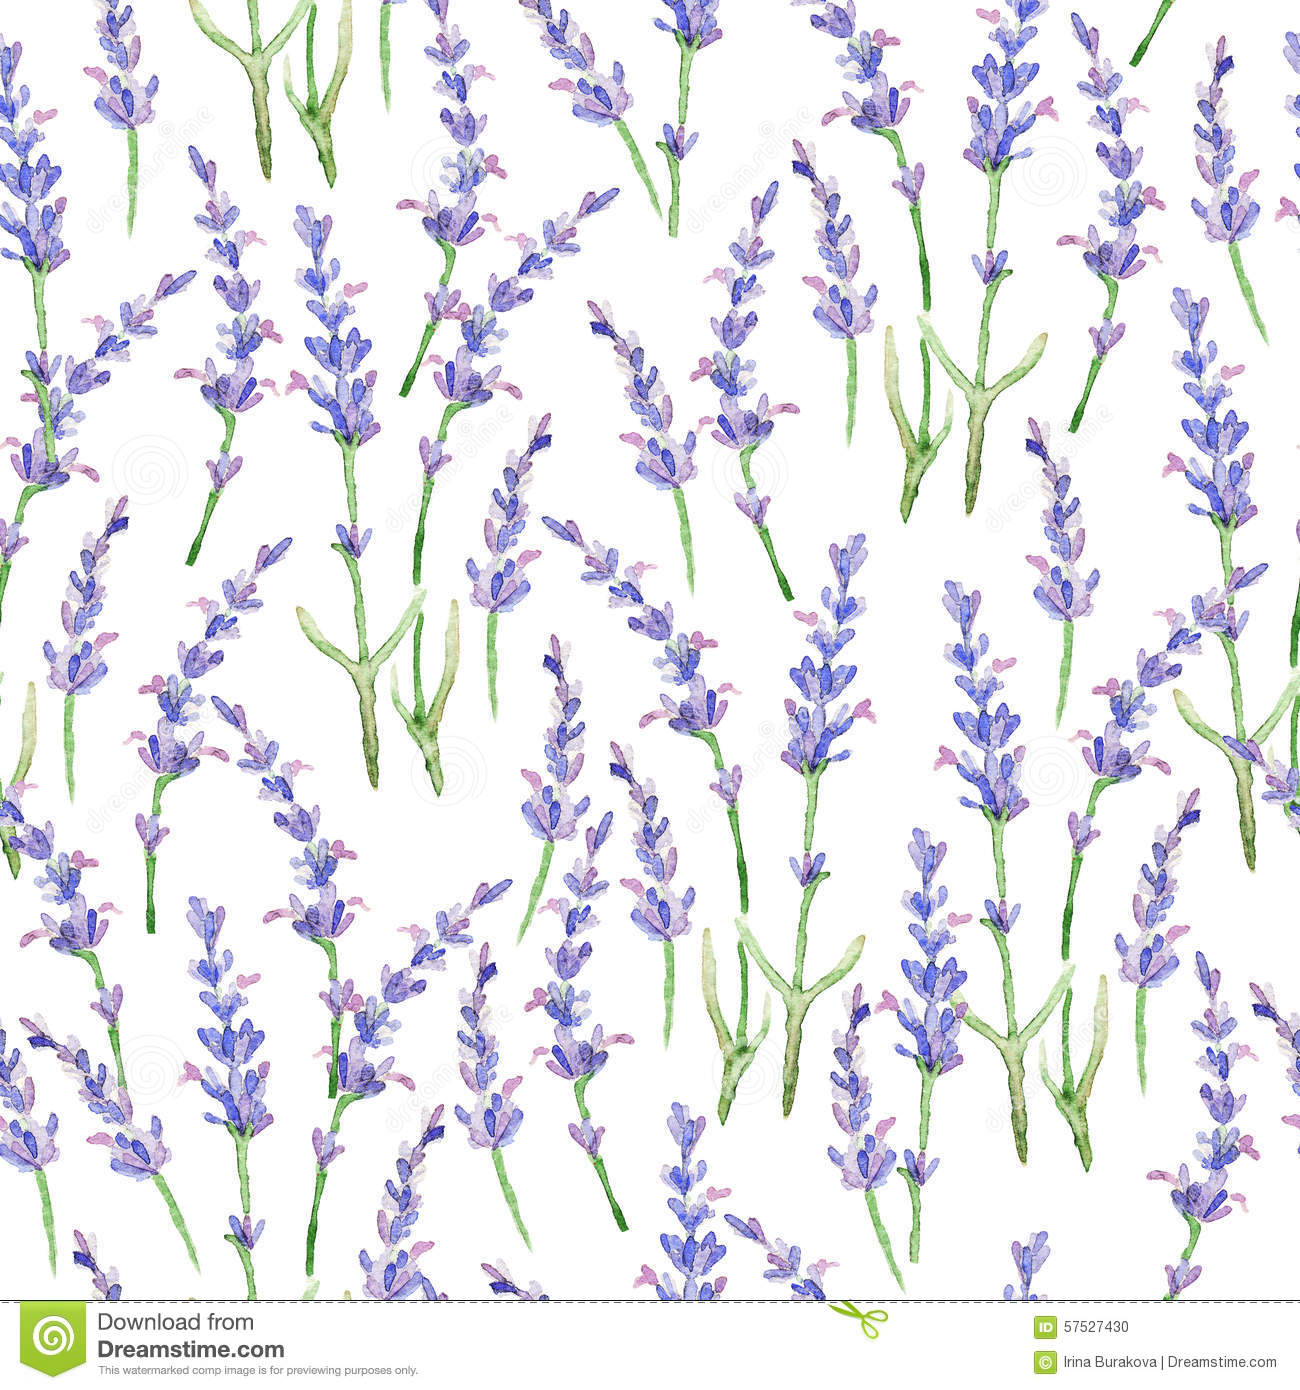 3d Wallpaper Lavender Watercolor Pattern With Lavender Stock Illustration